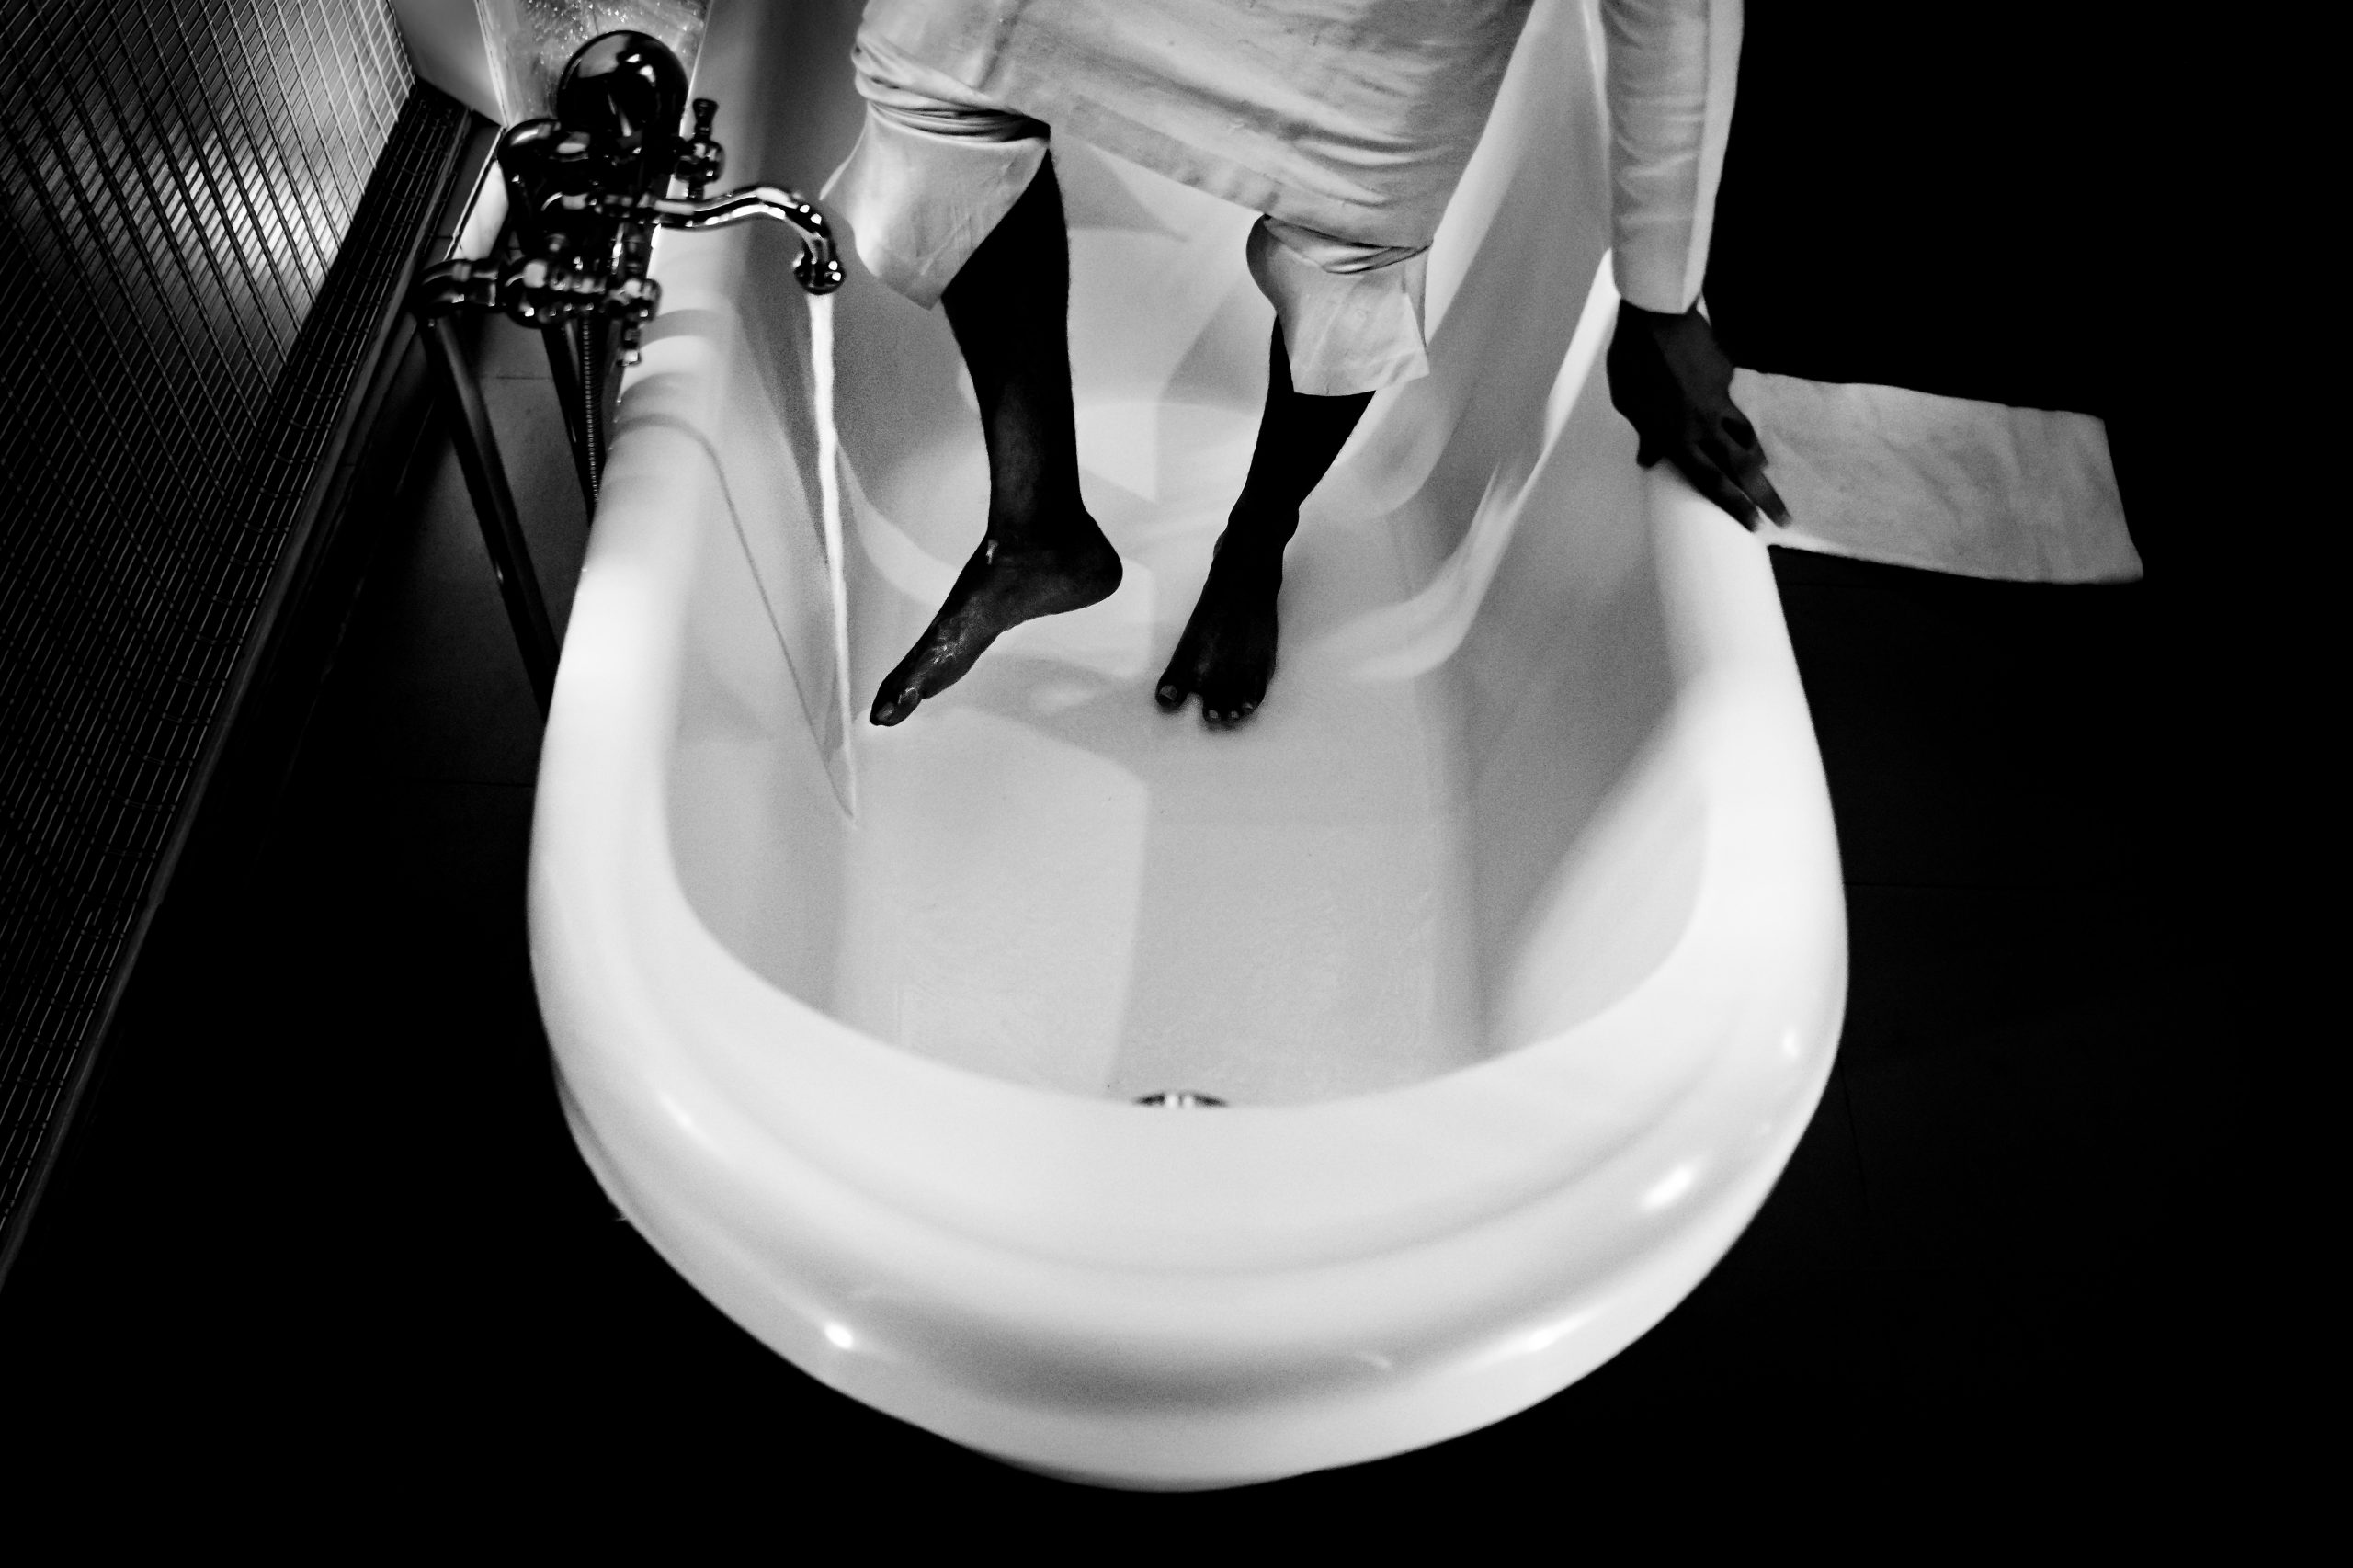 A groom washes his feet in the tub